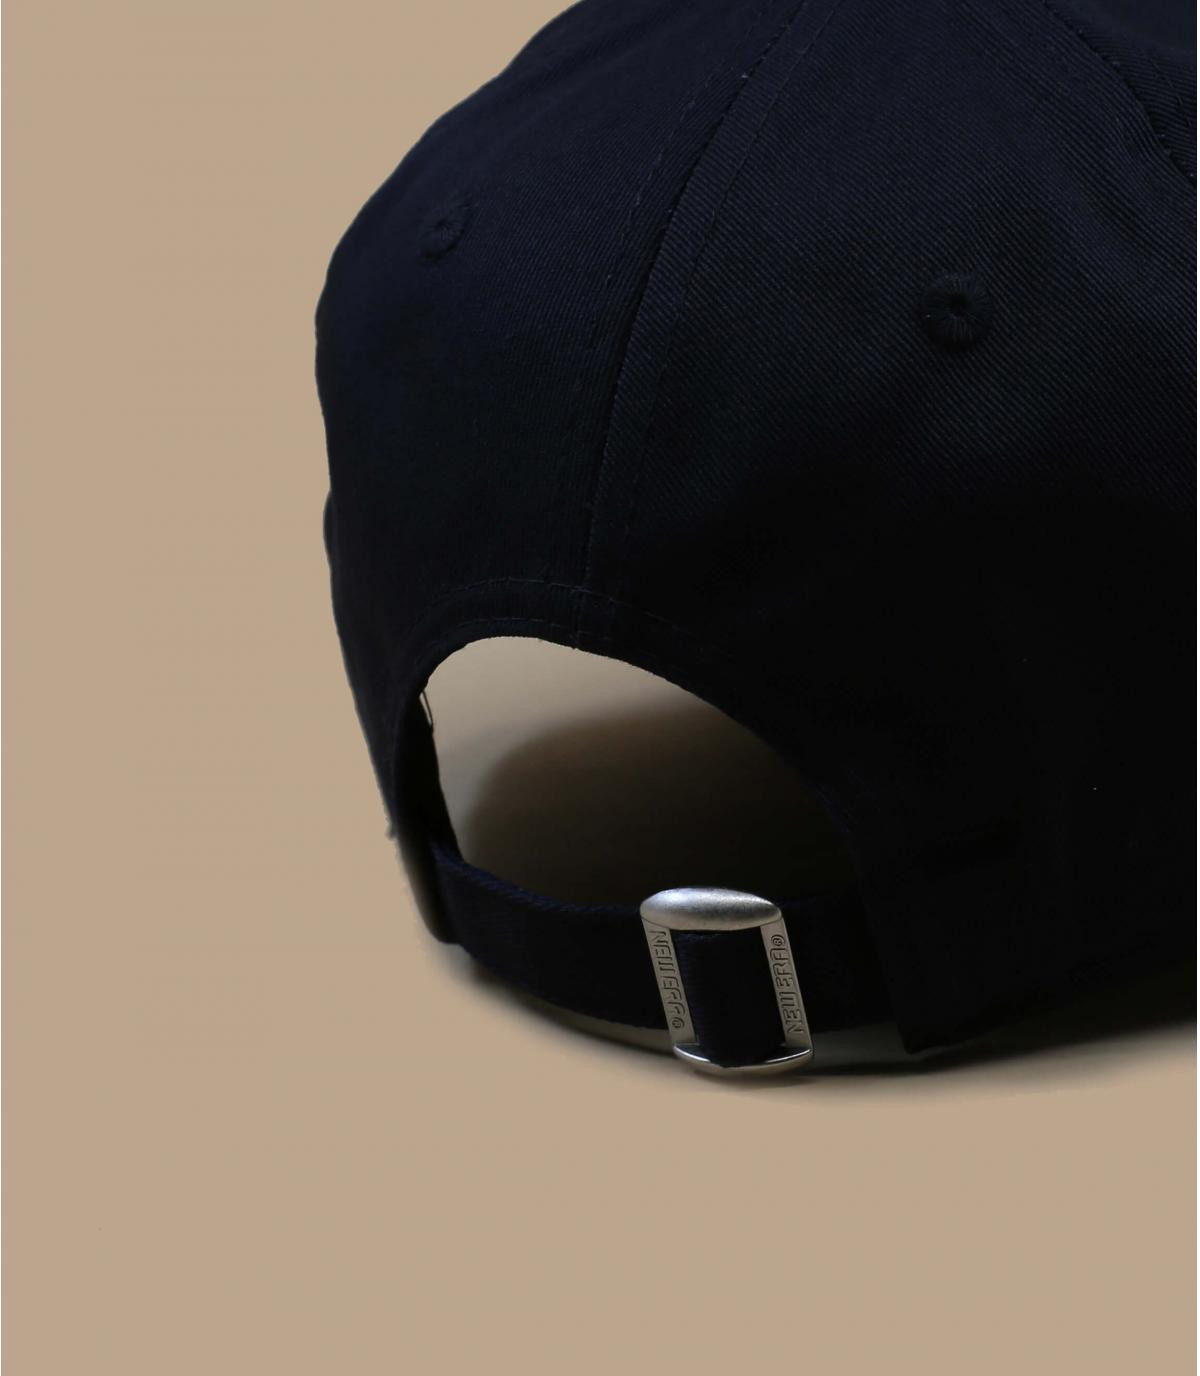 Détails Casquette Kids Infill 940 NY navy - image 4